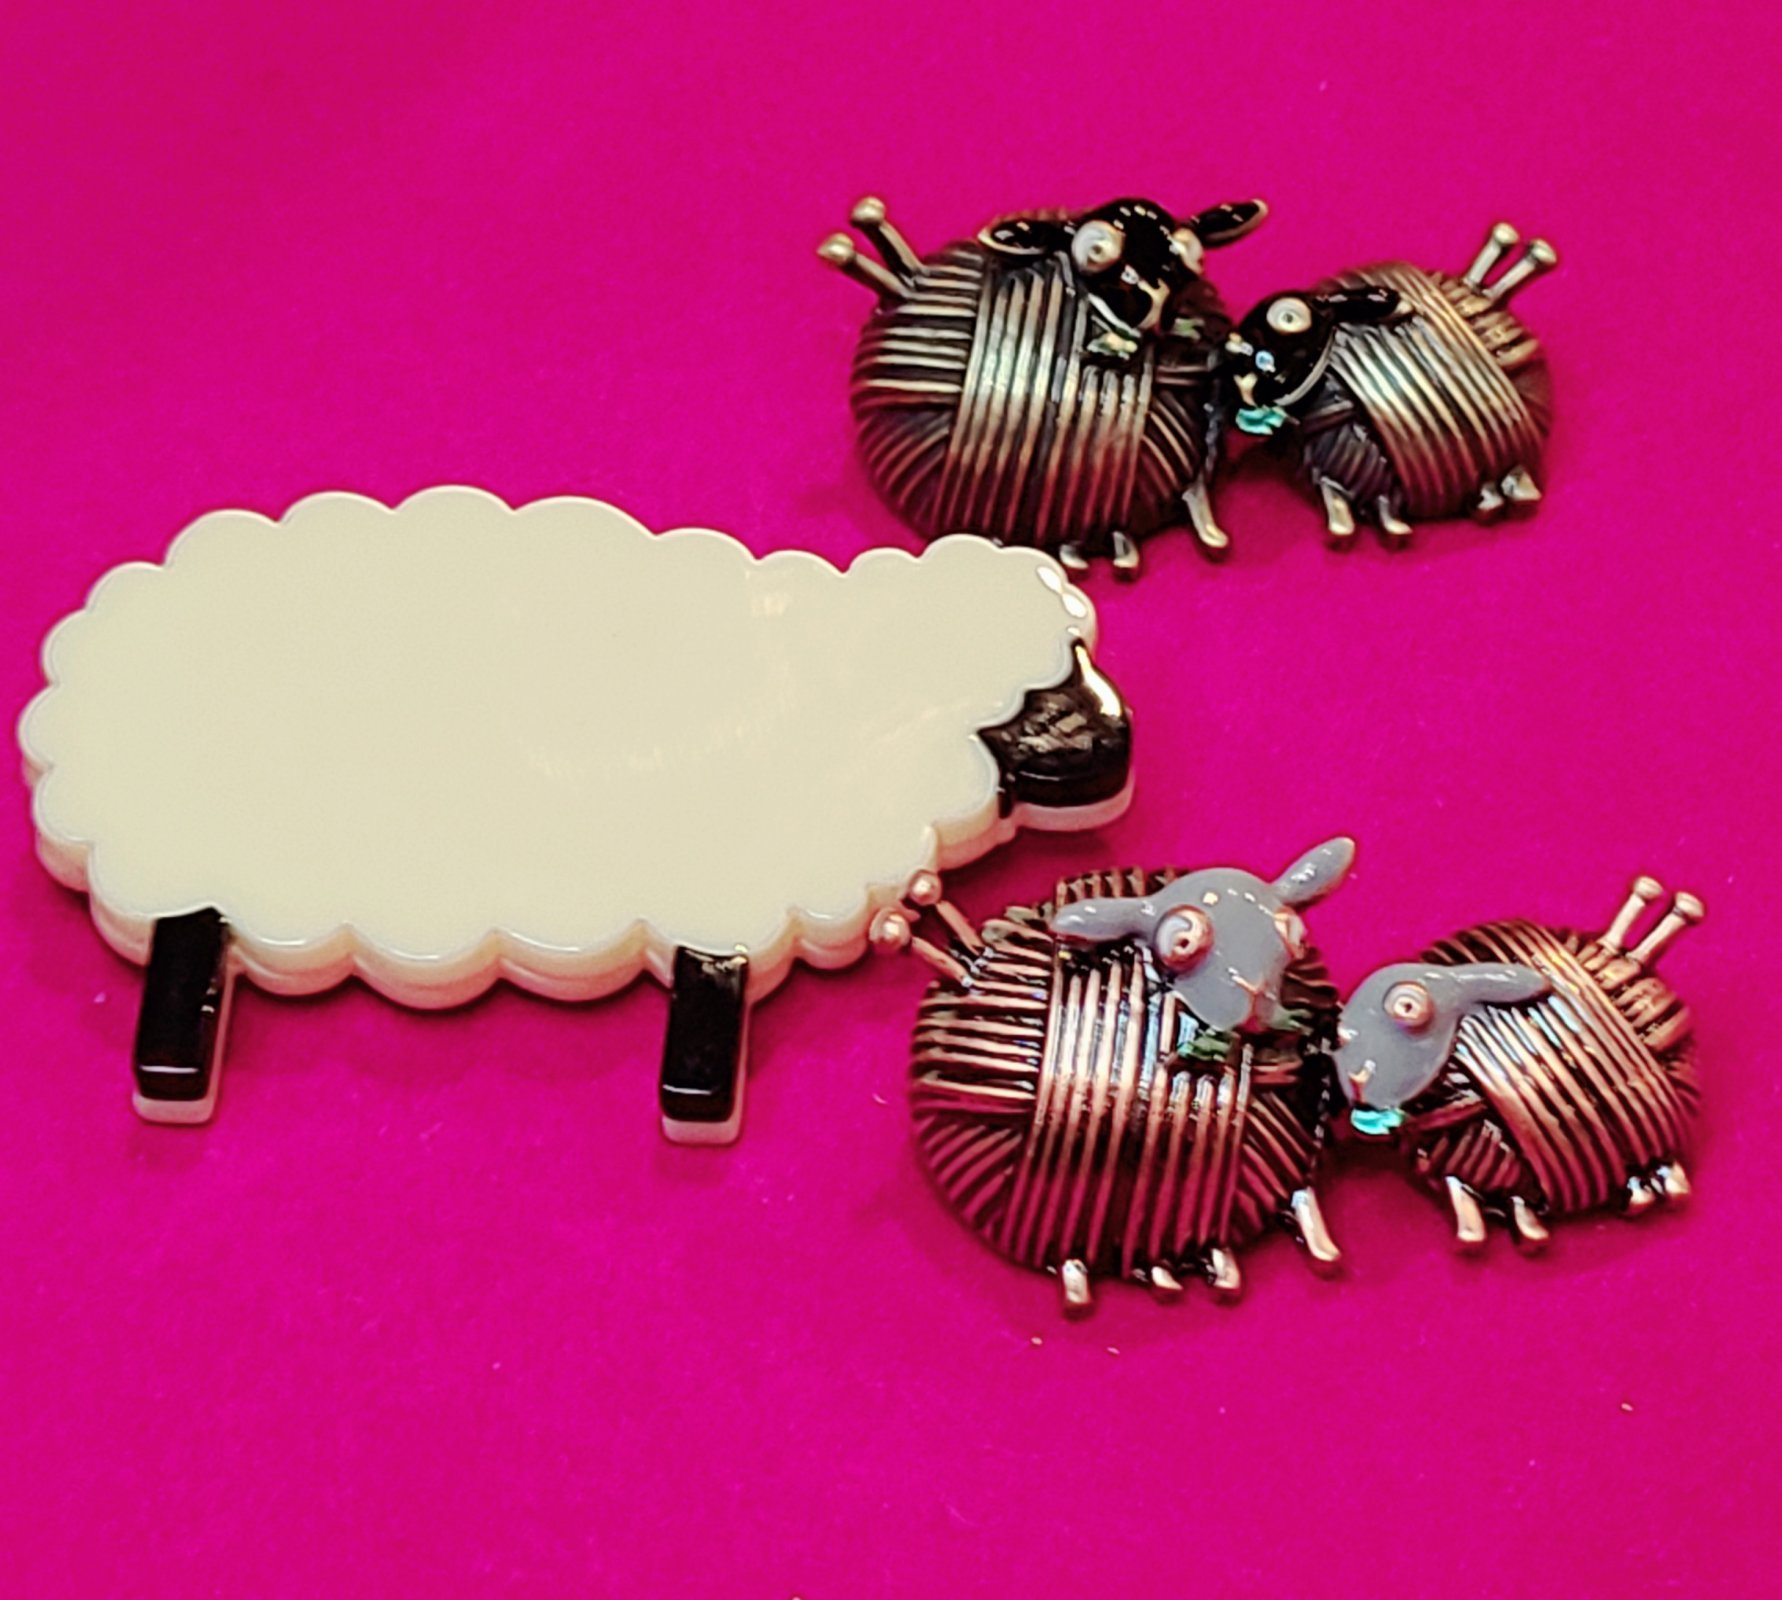 Pins - Premium Knitting Themed (A SHEEP THRILLS Exclusive)